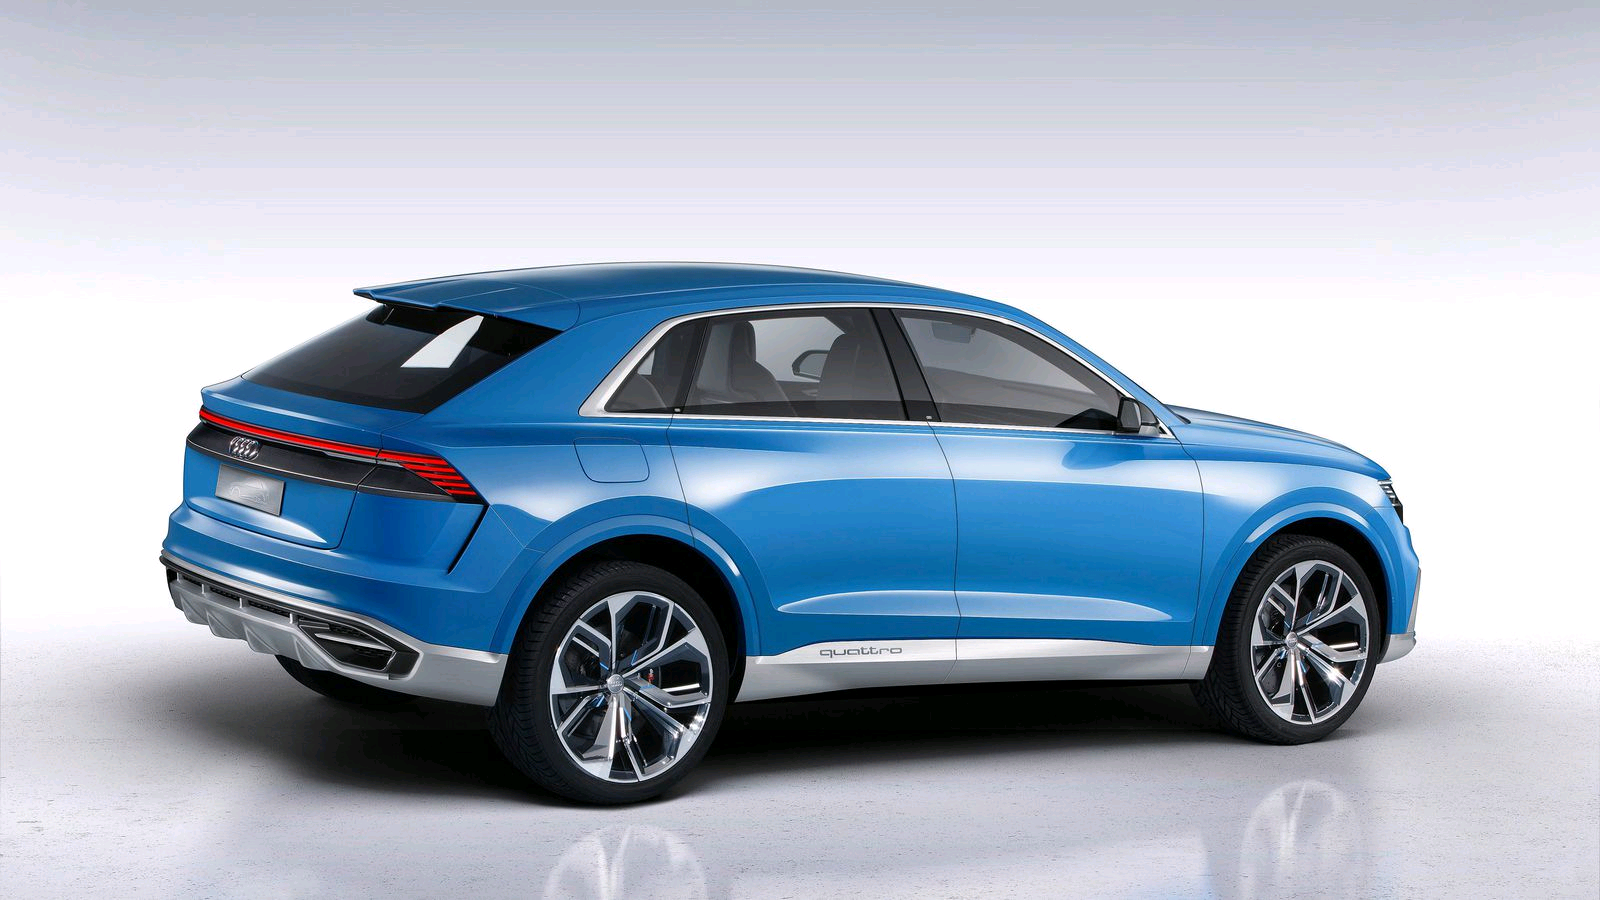 new audi q8 concept unveiled audi 39 s premium suv car. Black Bedroom Furniture Sets. Home Design Ideas